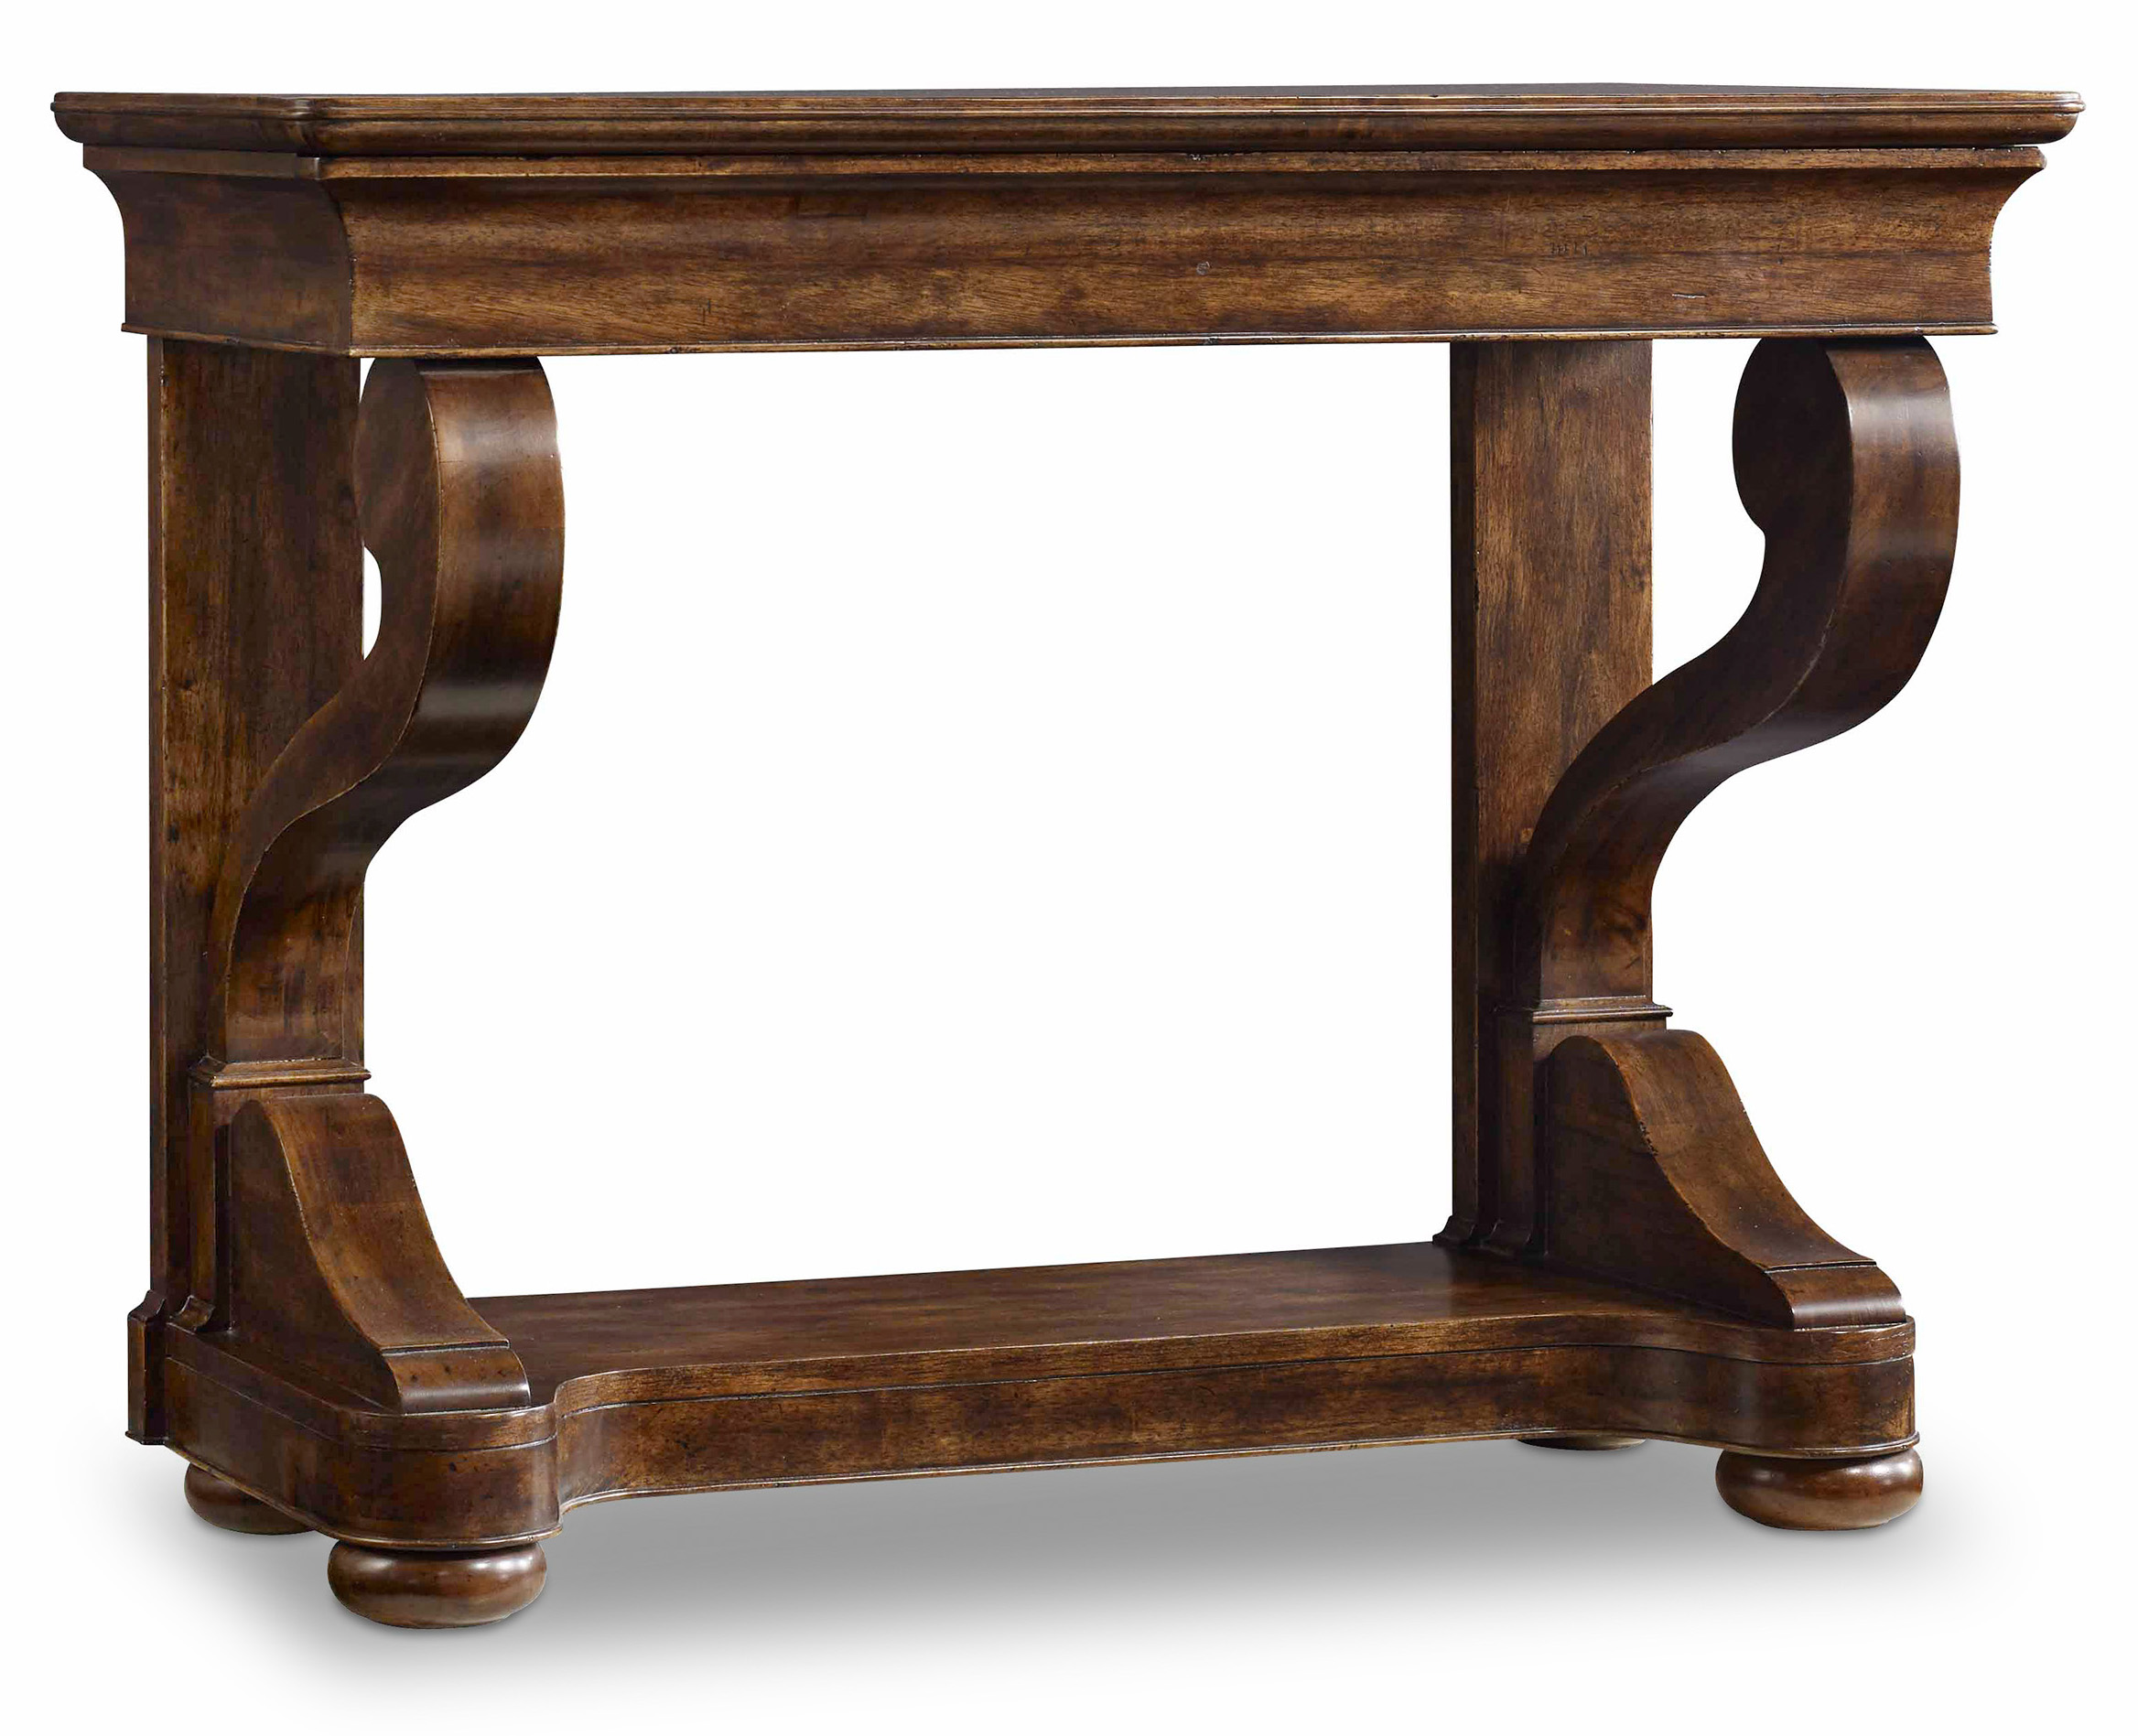 Hooker Furniture Archivist Scroll Leg Consulate Table - Item Number: 5447-85006